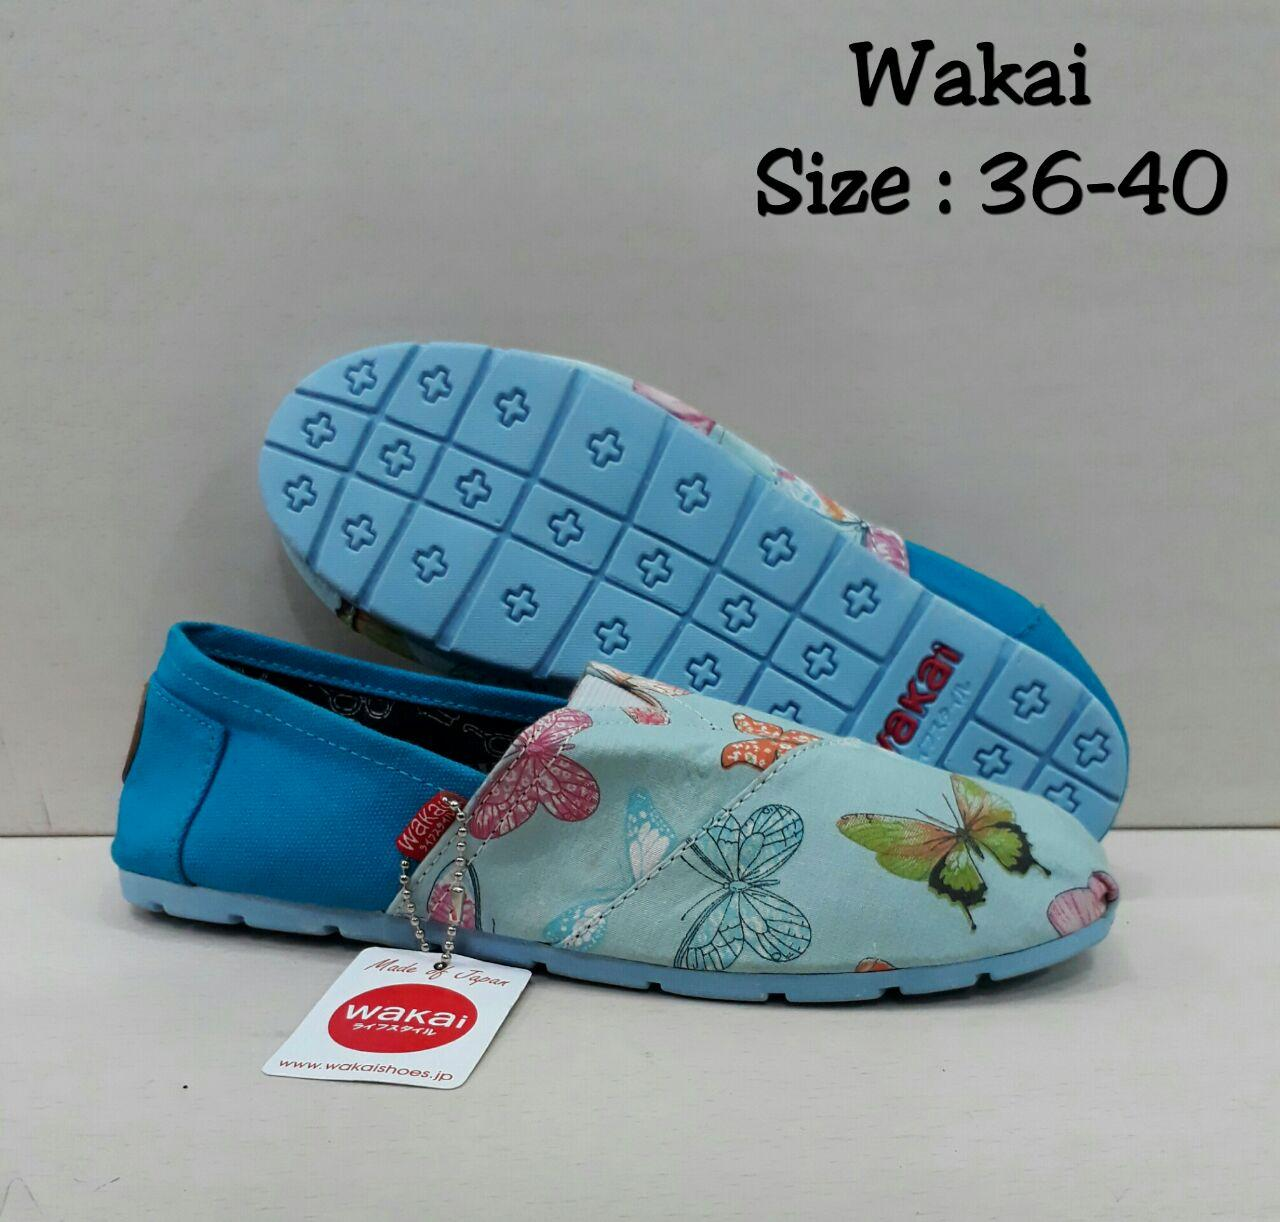 Wakai Biru New Butterfly uk36-40